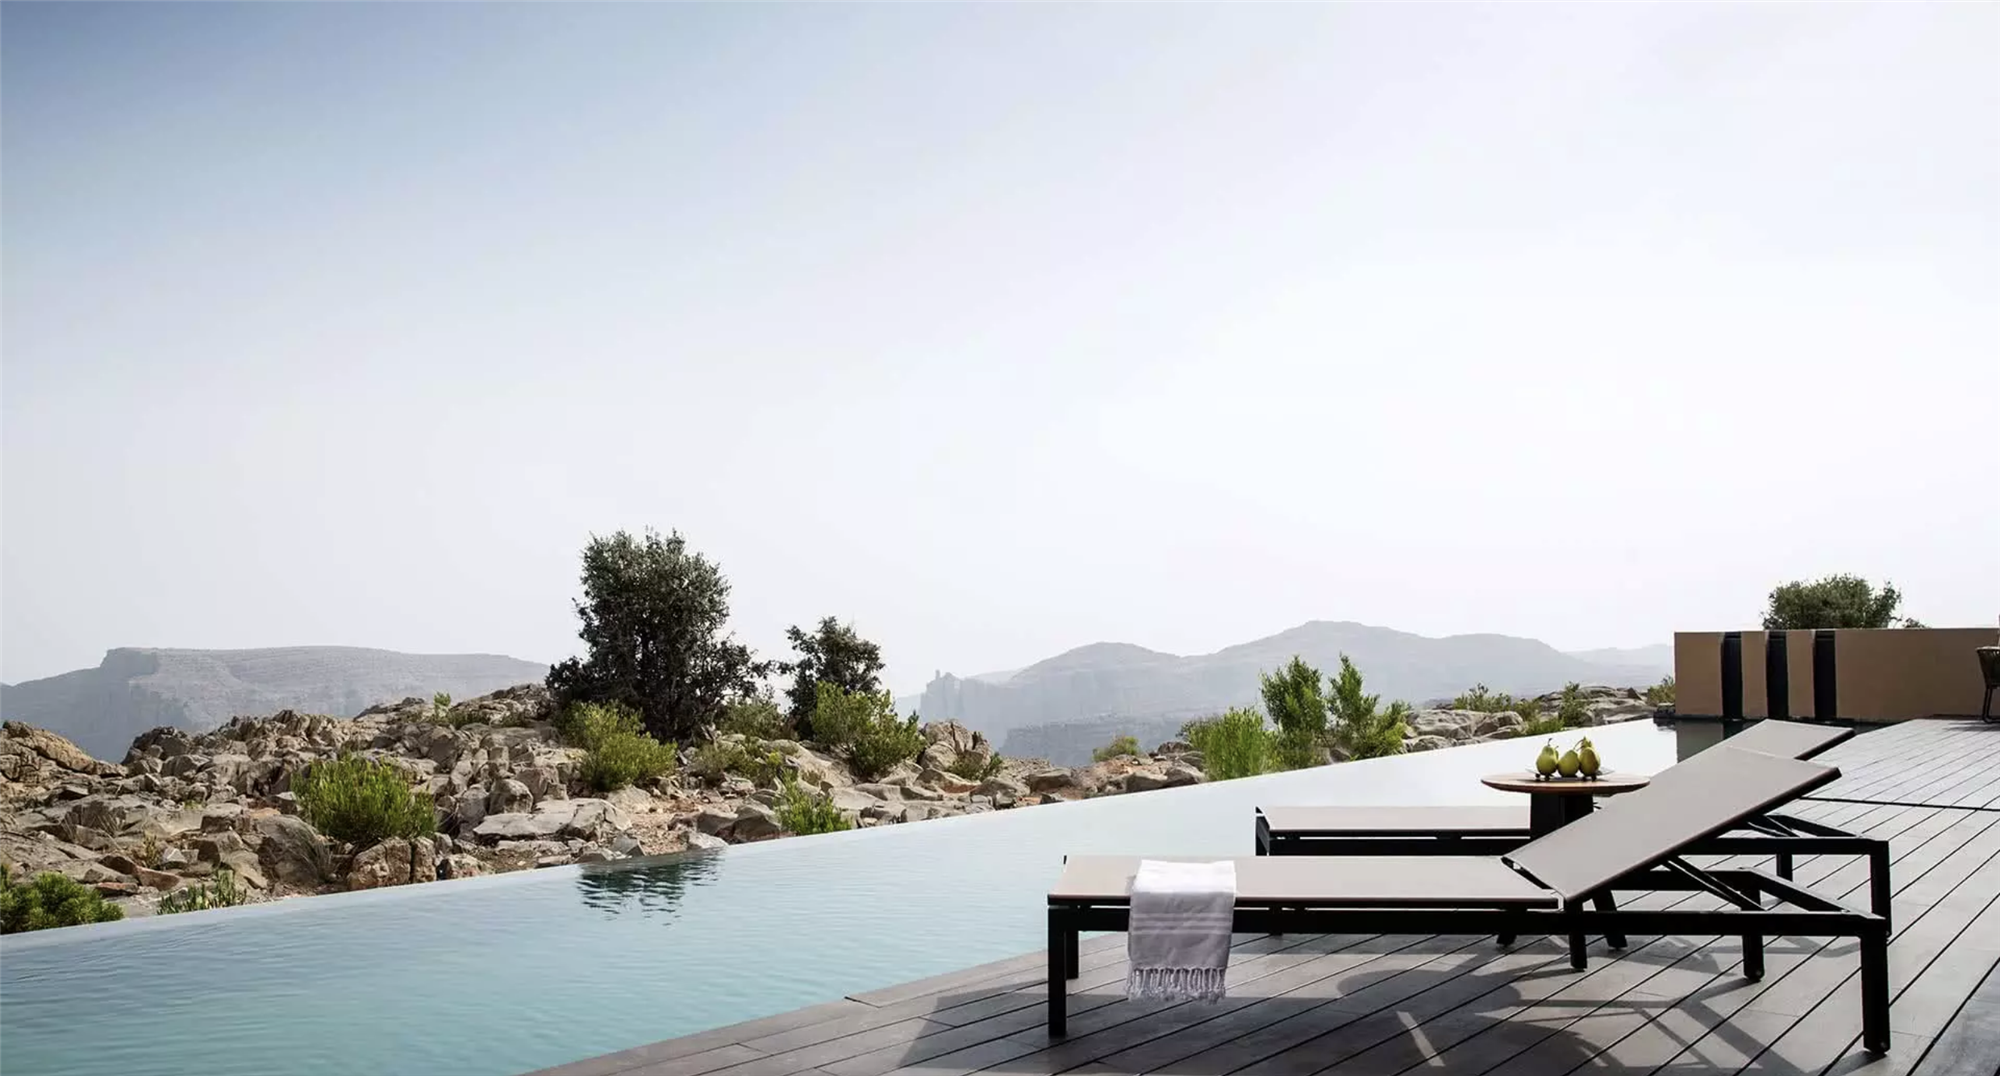 Captura de pantalla 2019-12-02 a las 7.59.48. Mejor resort eco: Anantara Al Jabal Al Akhdar Resort (Omán)